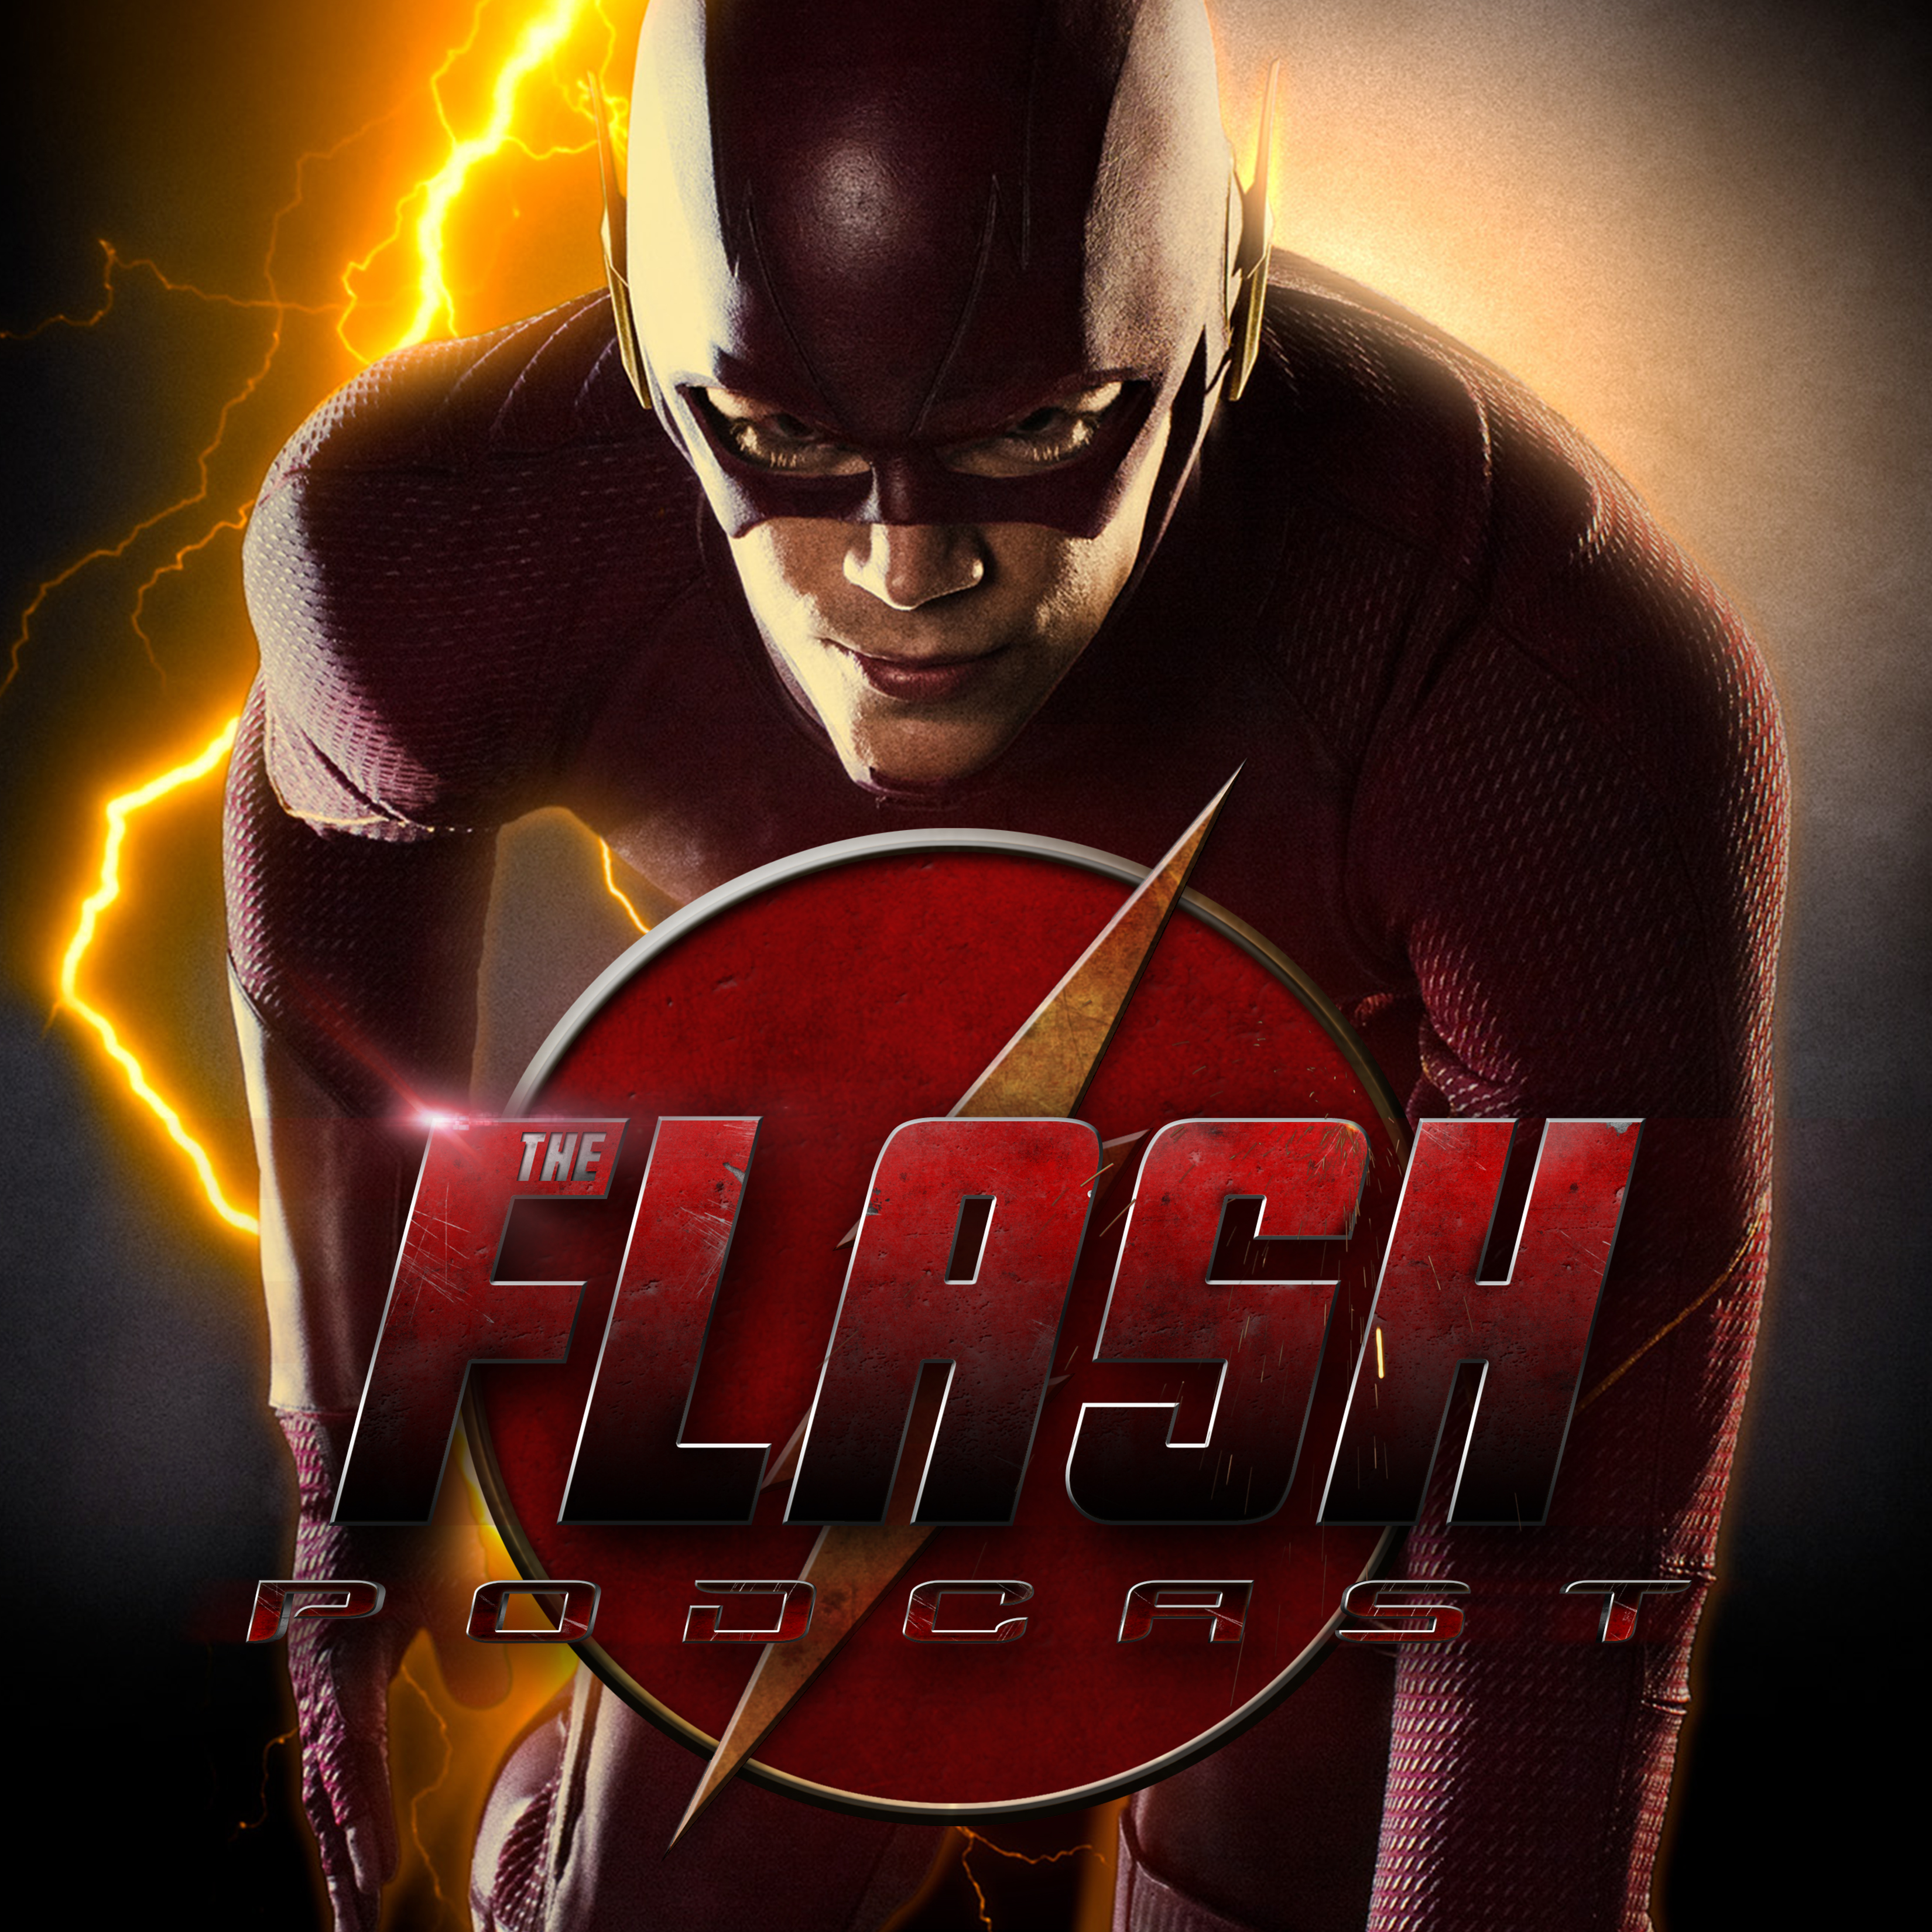 The Flash Podcast 022 - Wally West Pt. 2